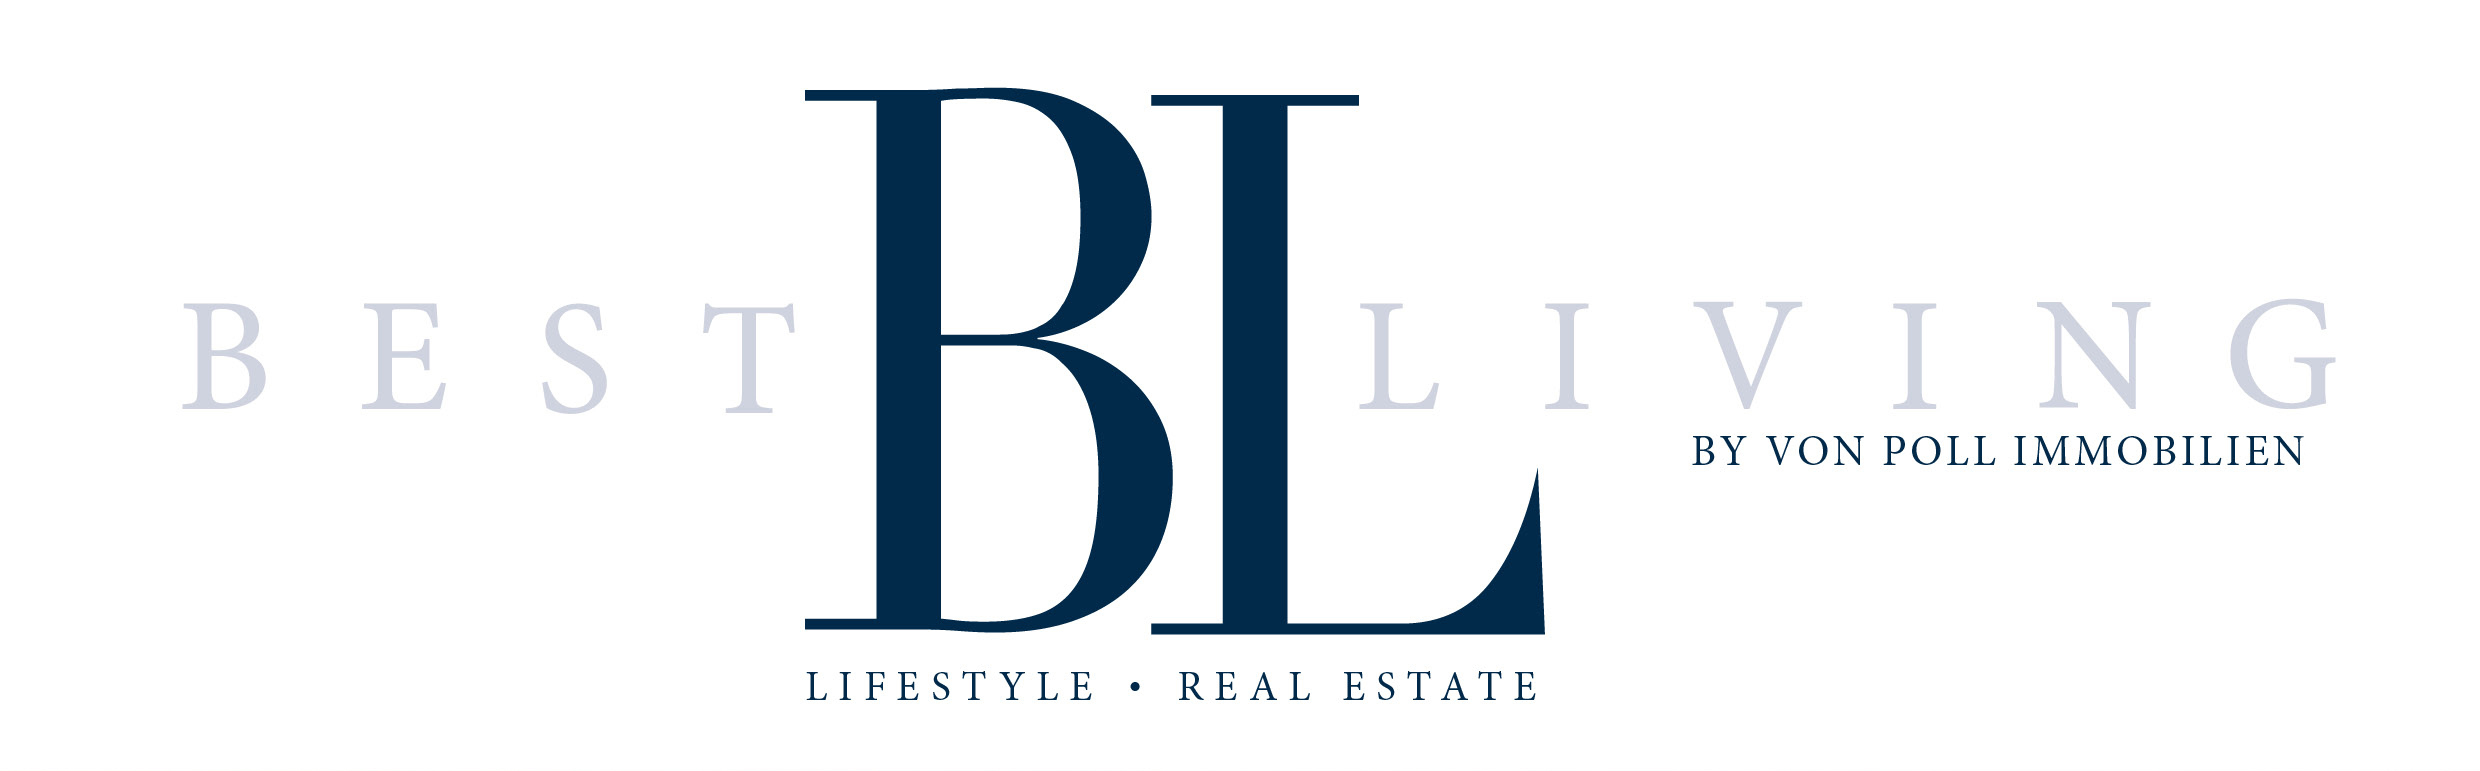 BL BEST LIVING BY VON POLL IMMOBILIEN LIFESTYLE REAL ESTATE